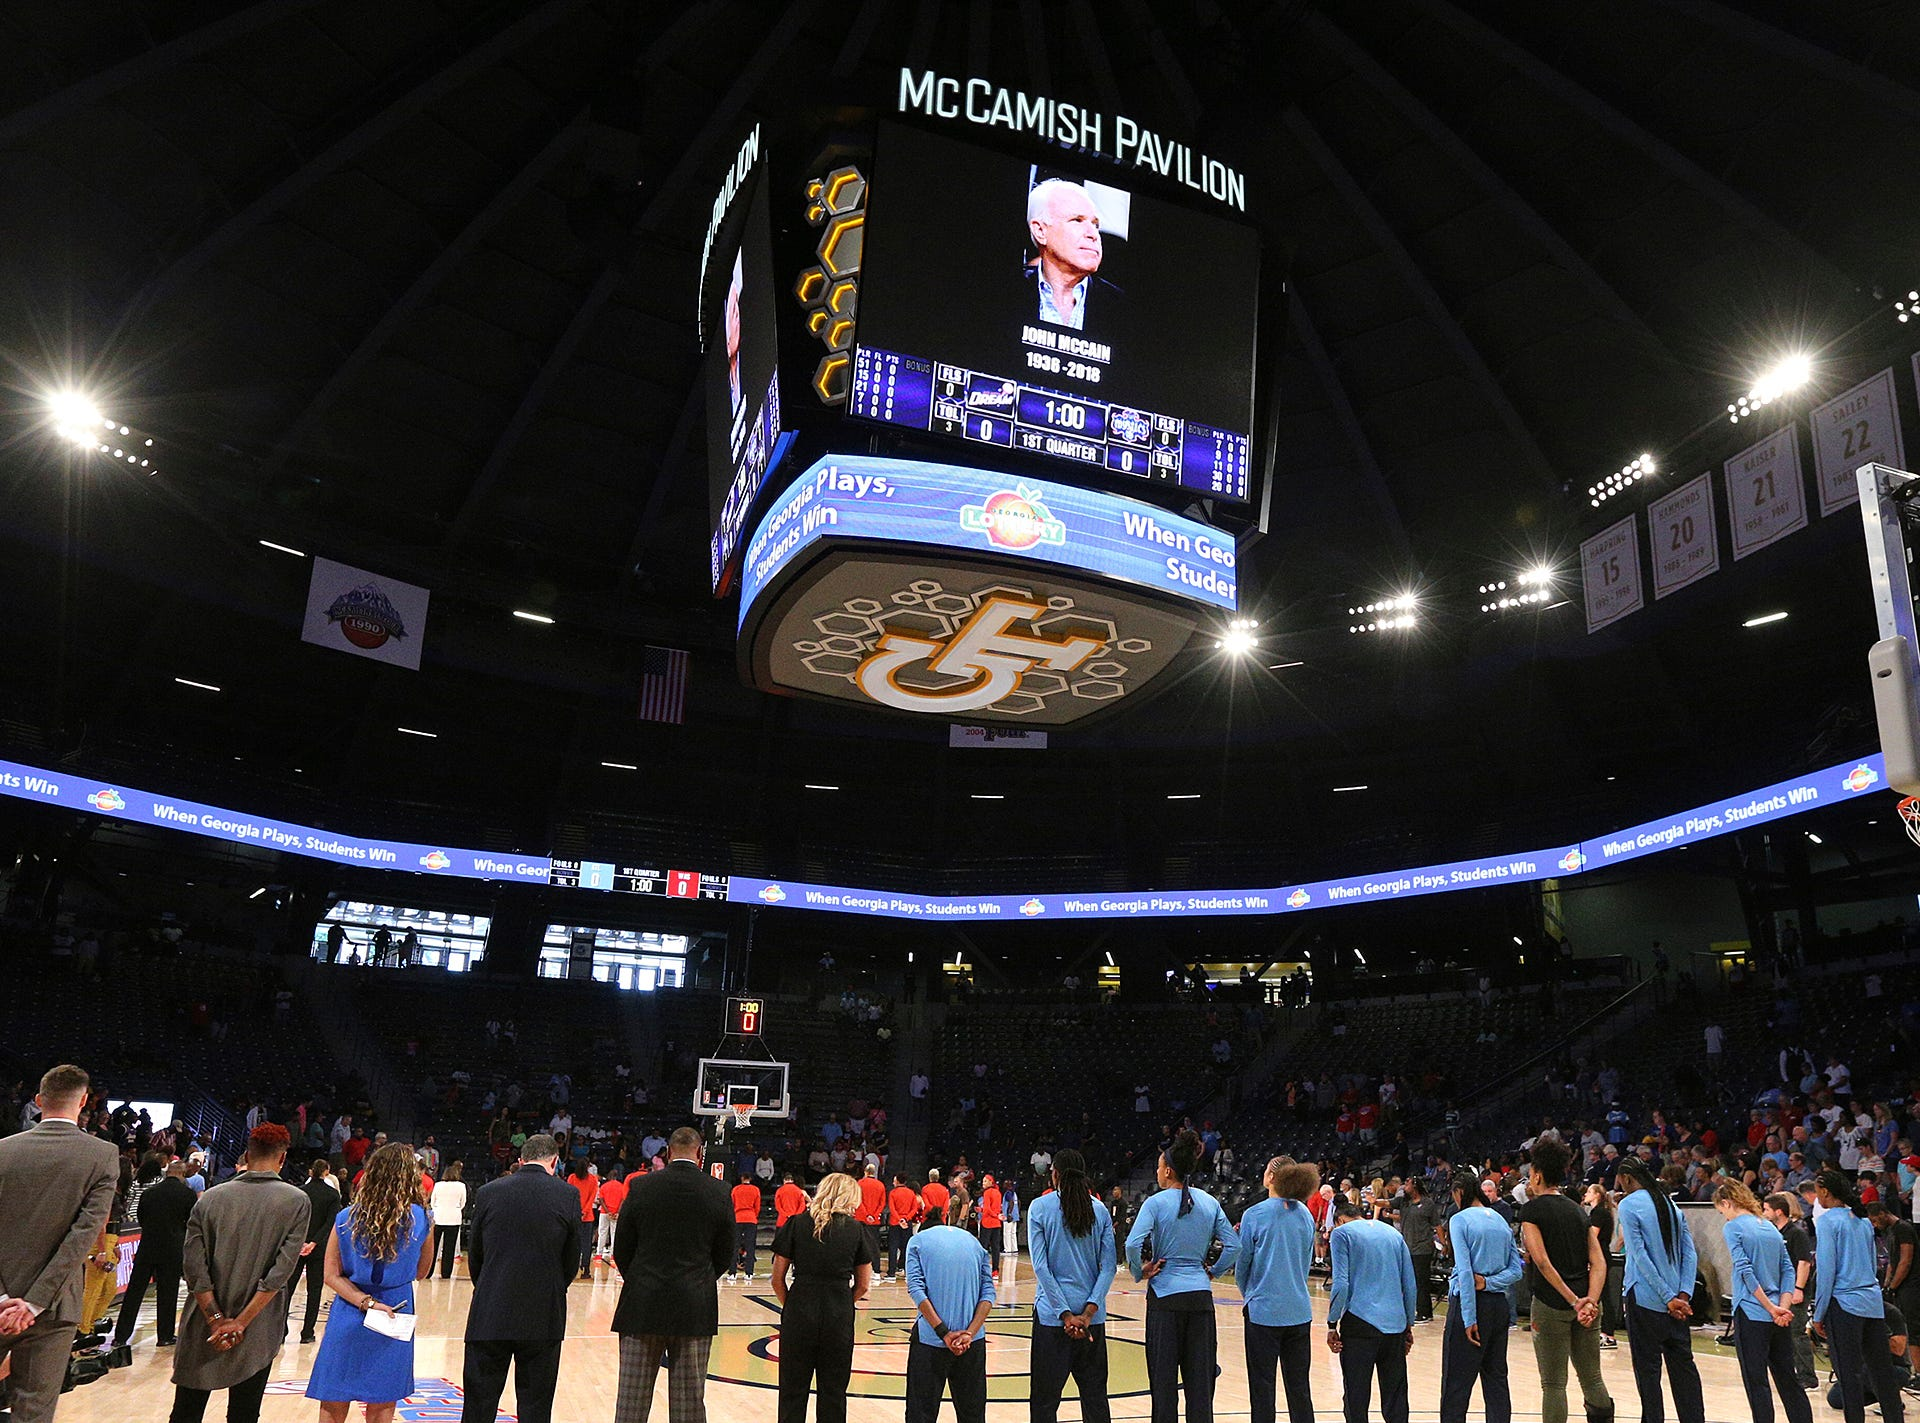 The Atlanta Dream and the Washington Mystics observe a moment of silence for Sen. John McCain prior to the start of their a WNBA basketball playoff semifinal, Sunday, Aug. 26, 2018, in Atlanta.